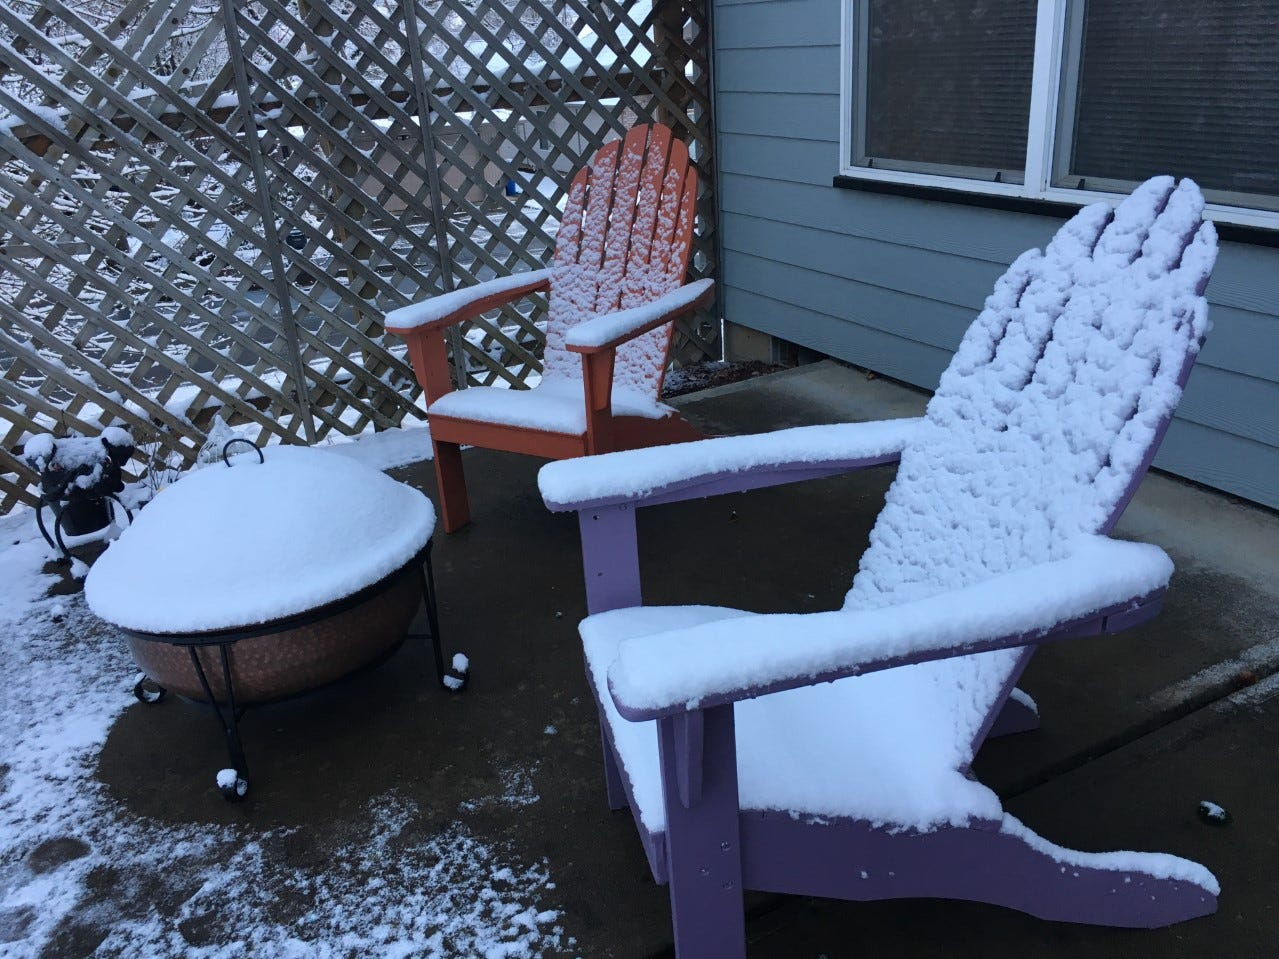 Snow covers two Adirondack chairs and a backyard fire pit in West Salem on Tuesday morning.